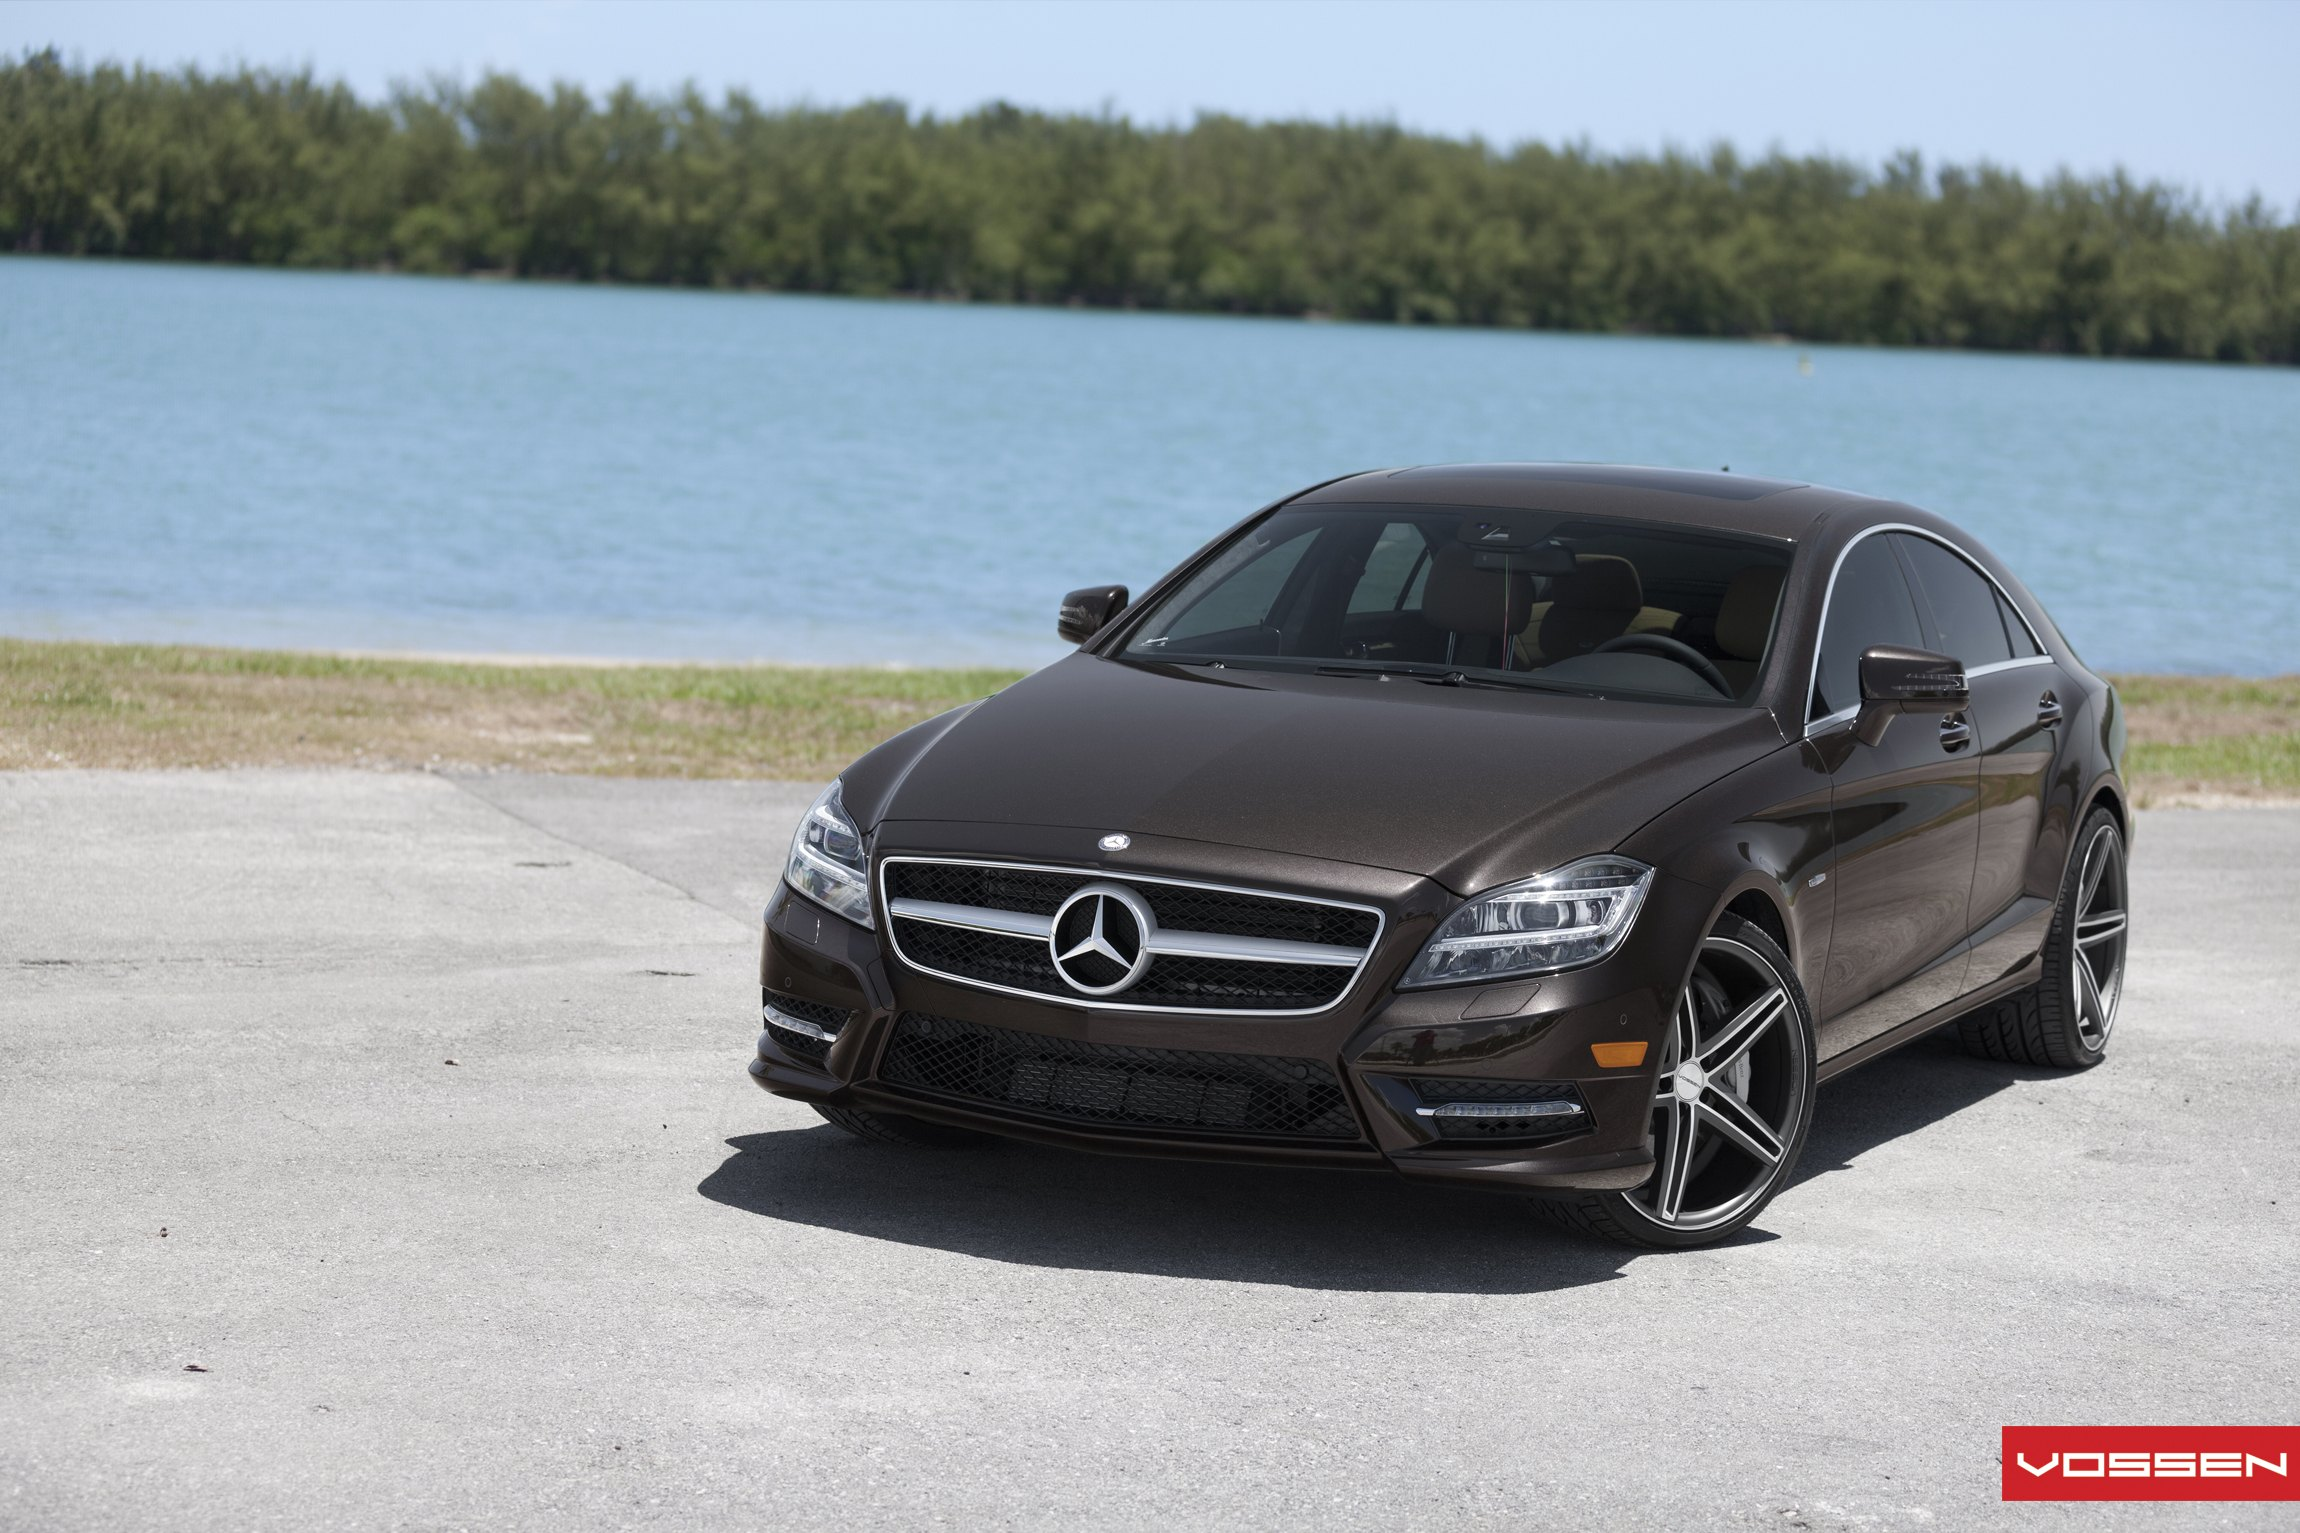 Custom Mercedes Images Mods Photos Upgrades Gallery 2008 Benz Cls 550 Wide Kit